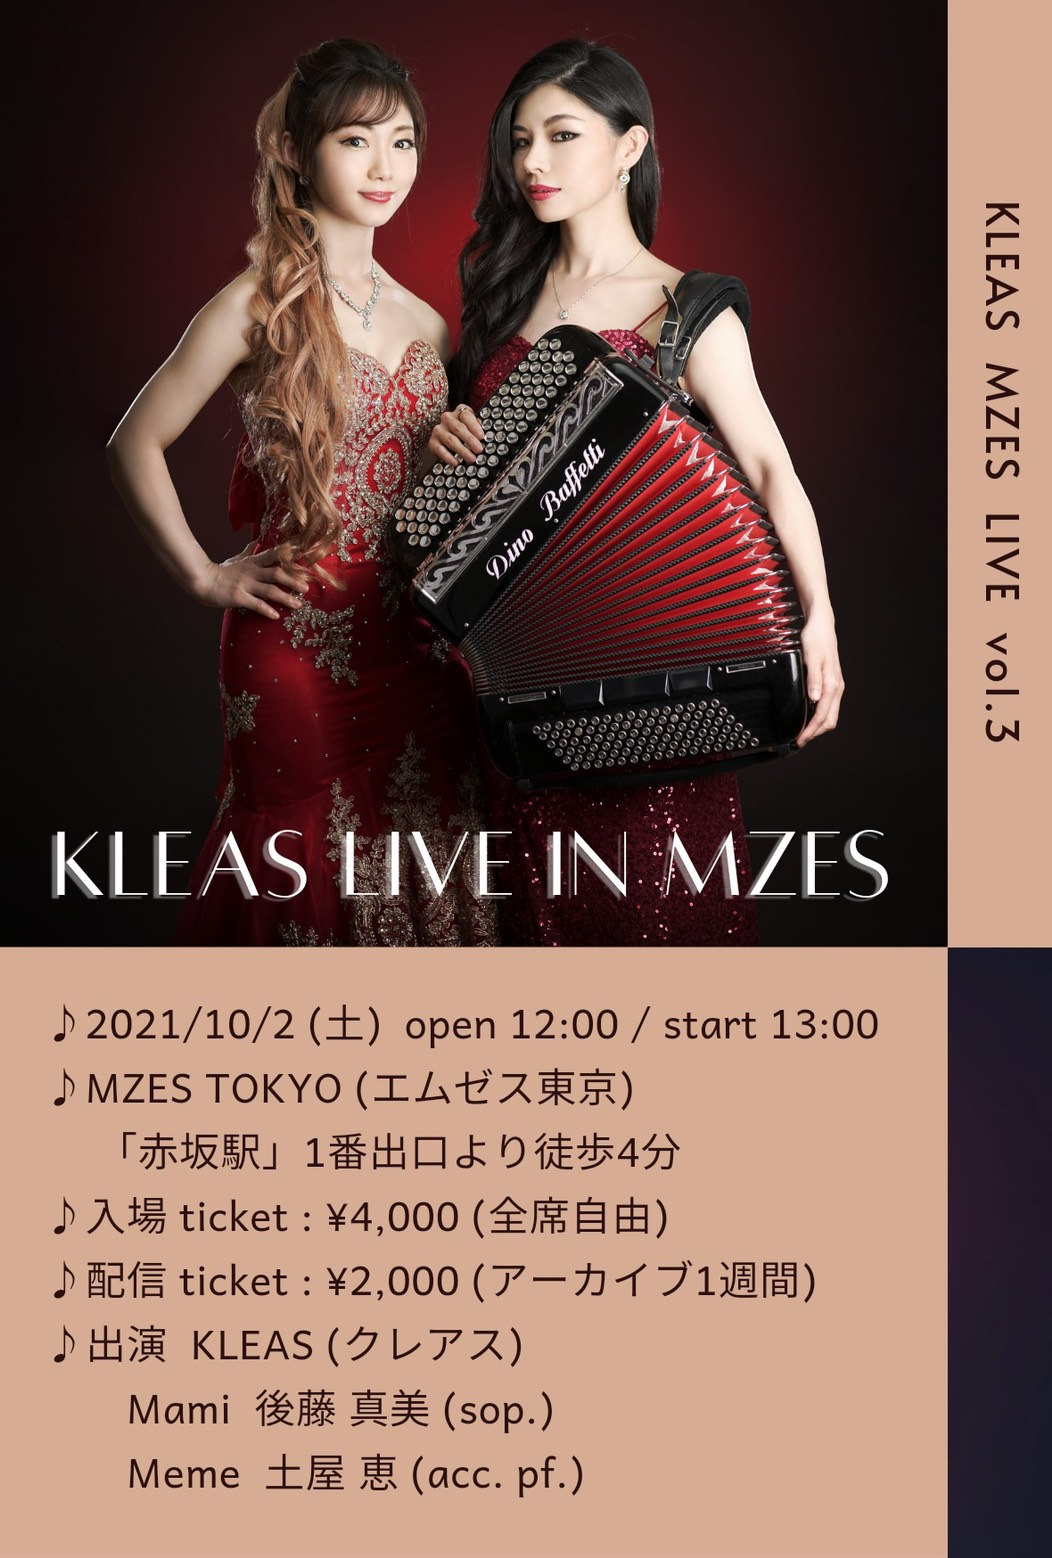 KLEAS LIVE IN MZES